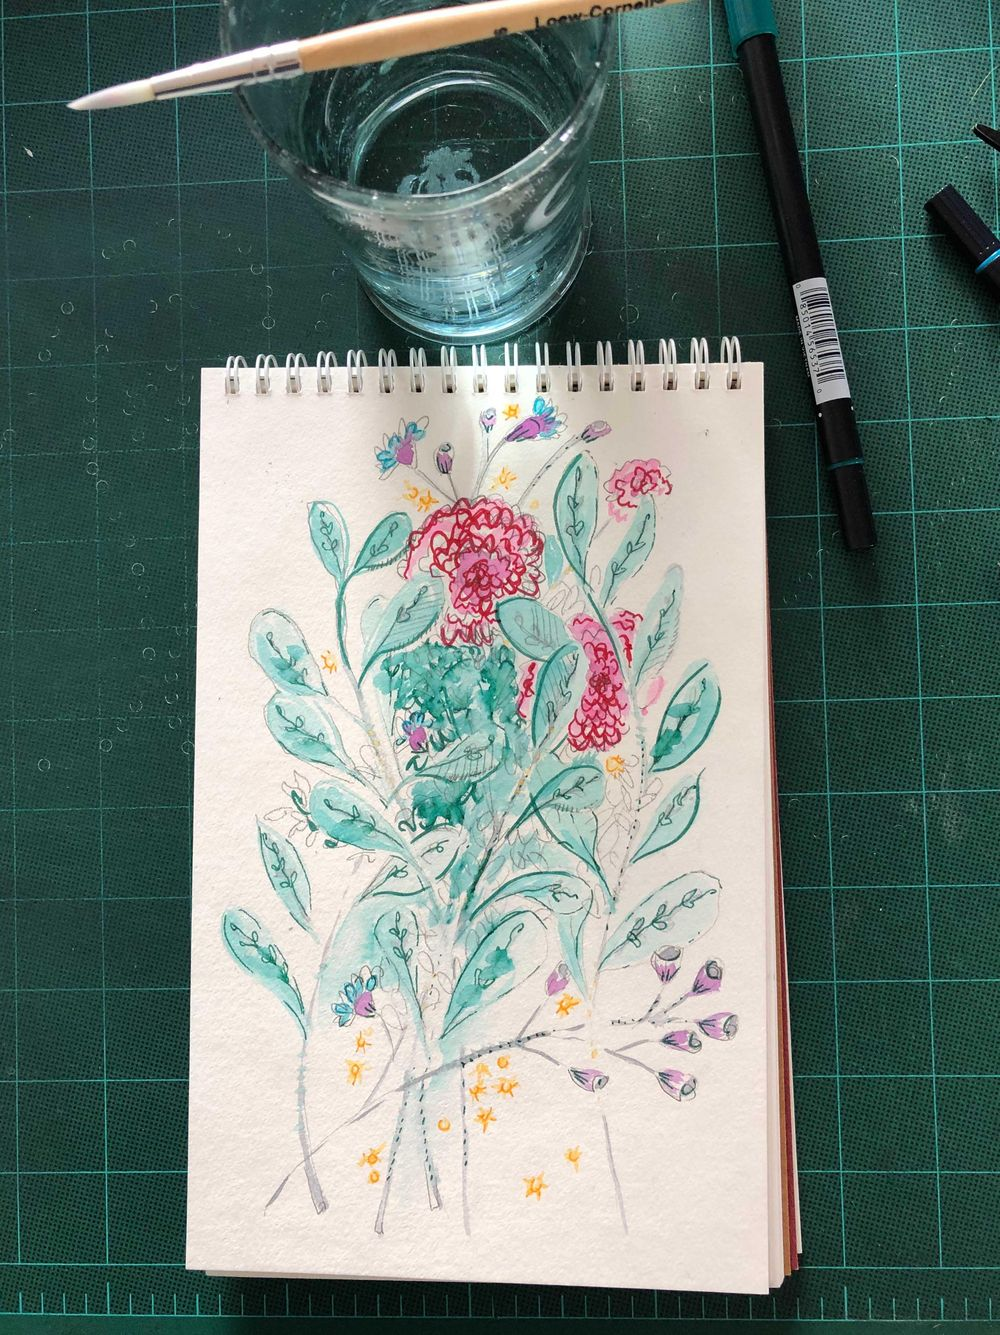 Making my own expressive florals - image 1 - student project